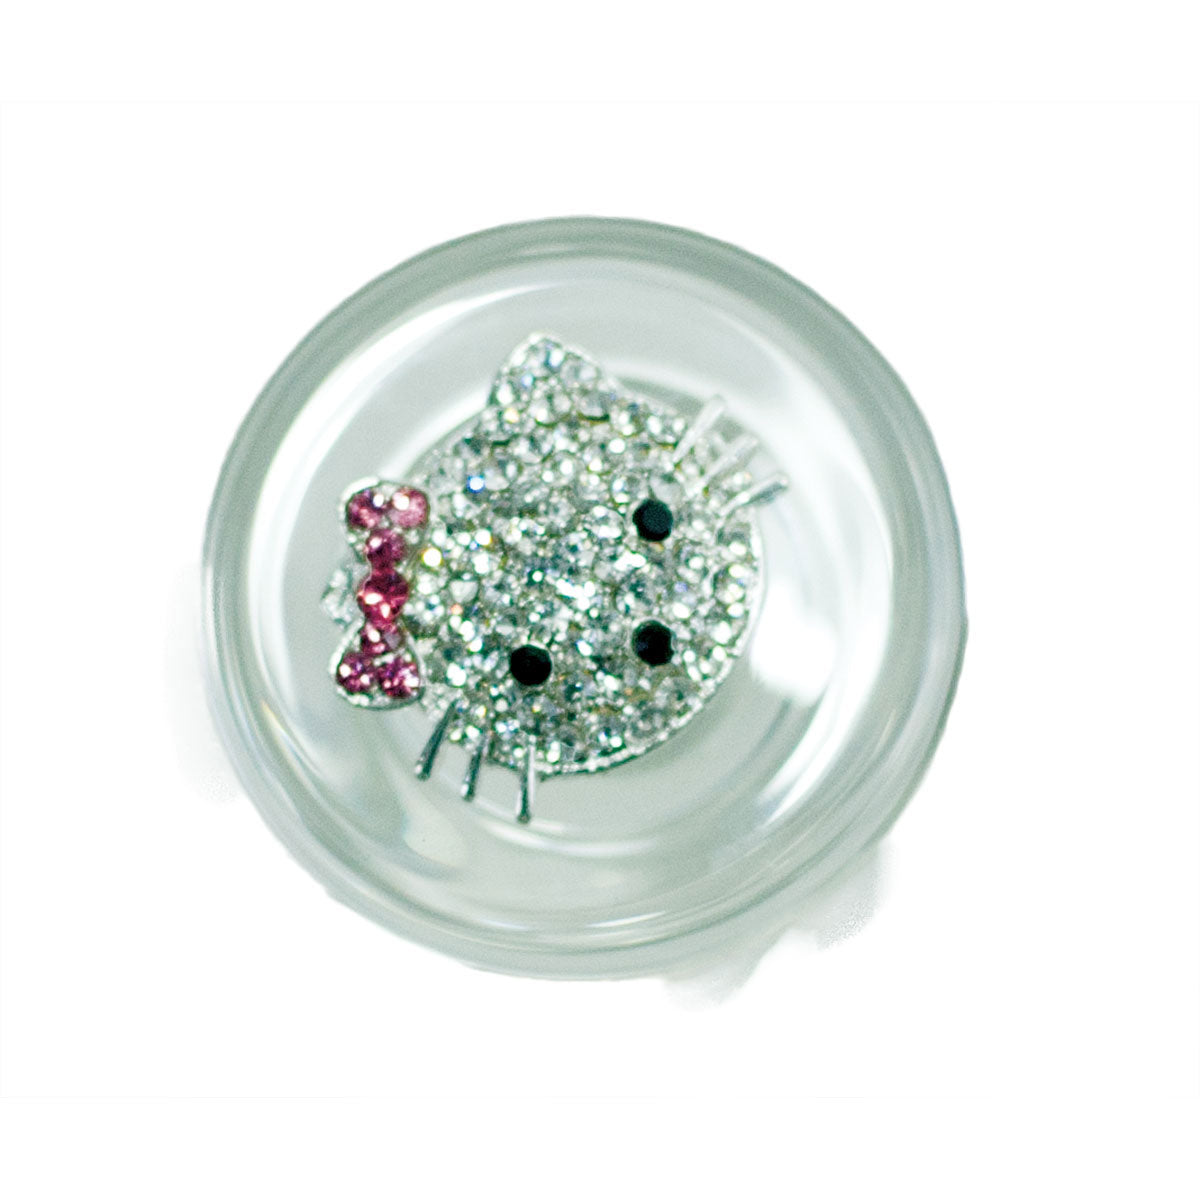 Crystal Delights Kitty Plug